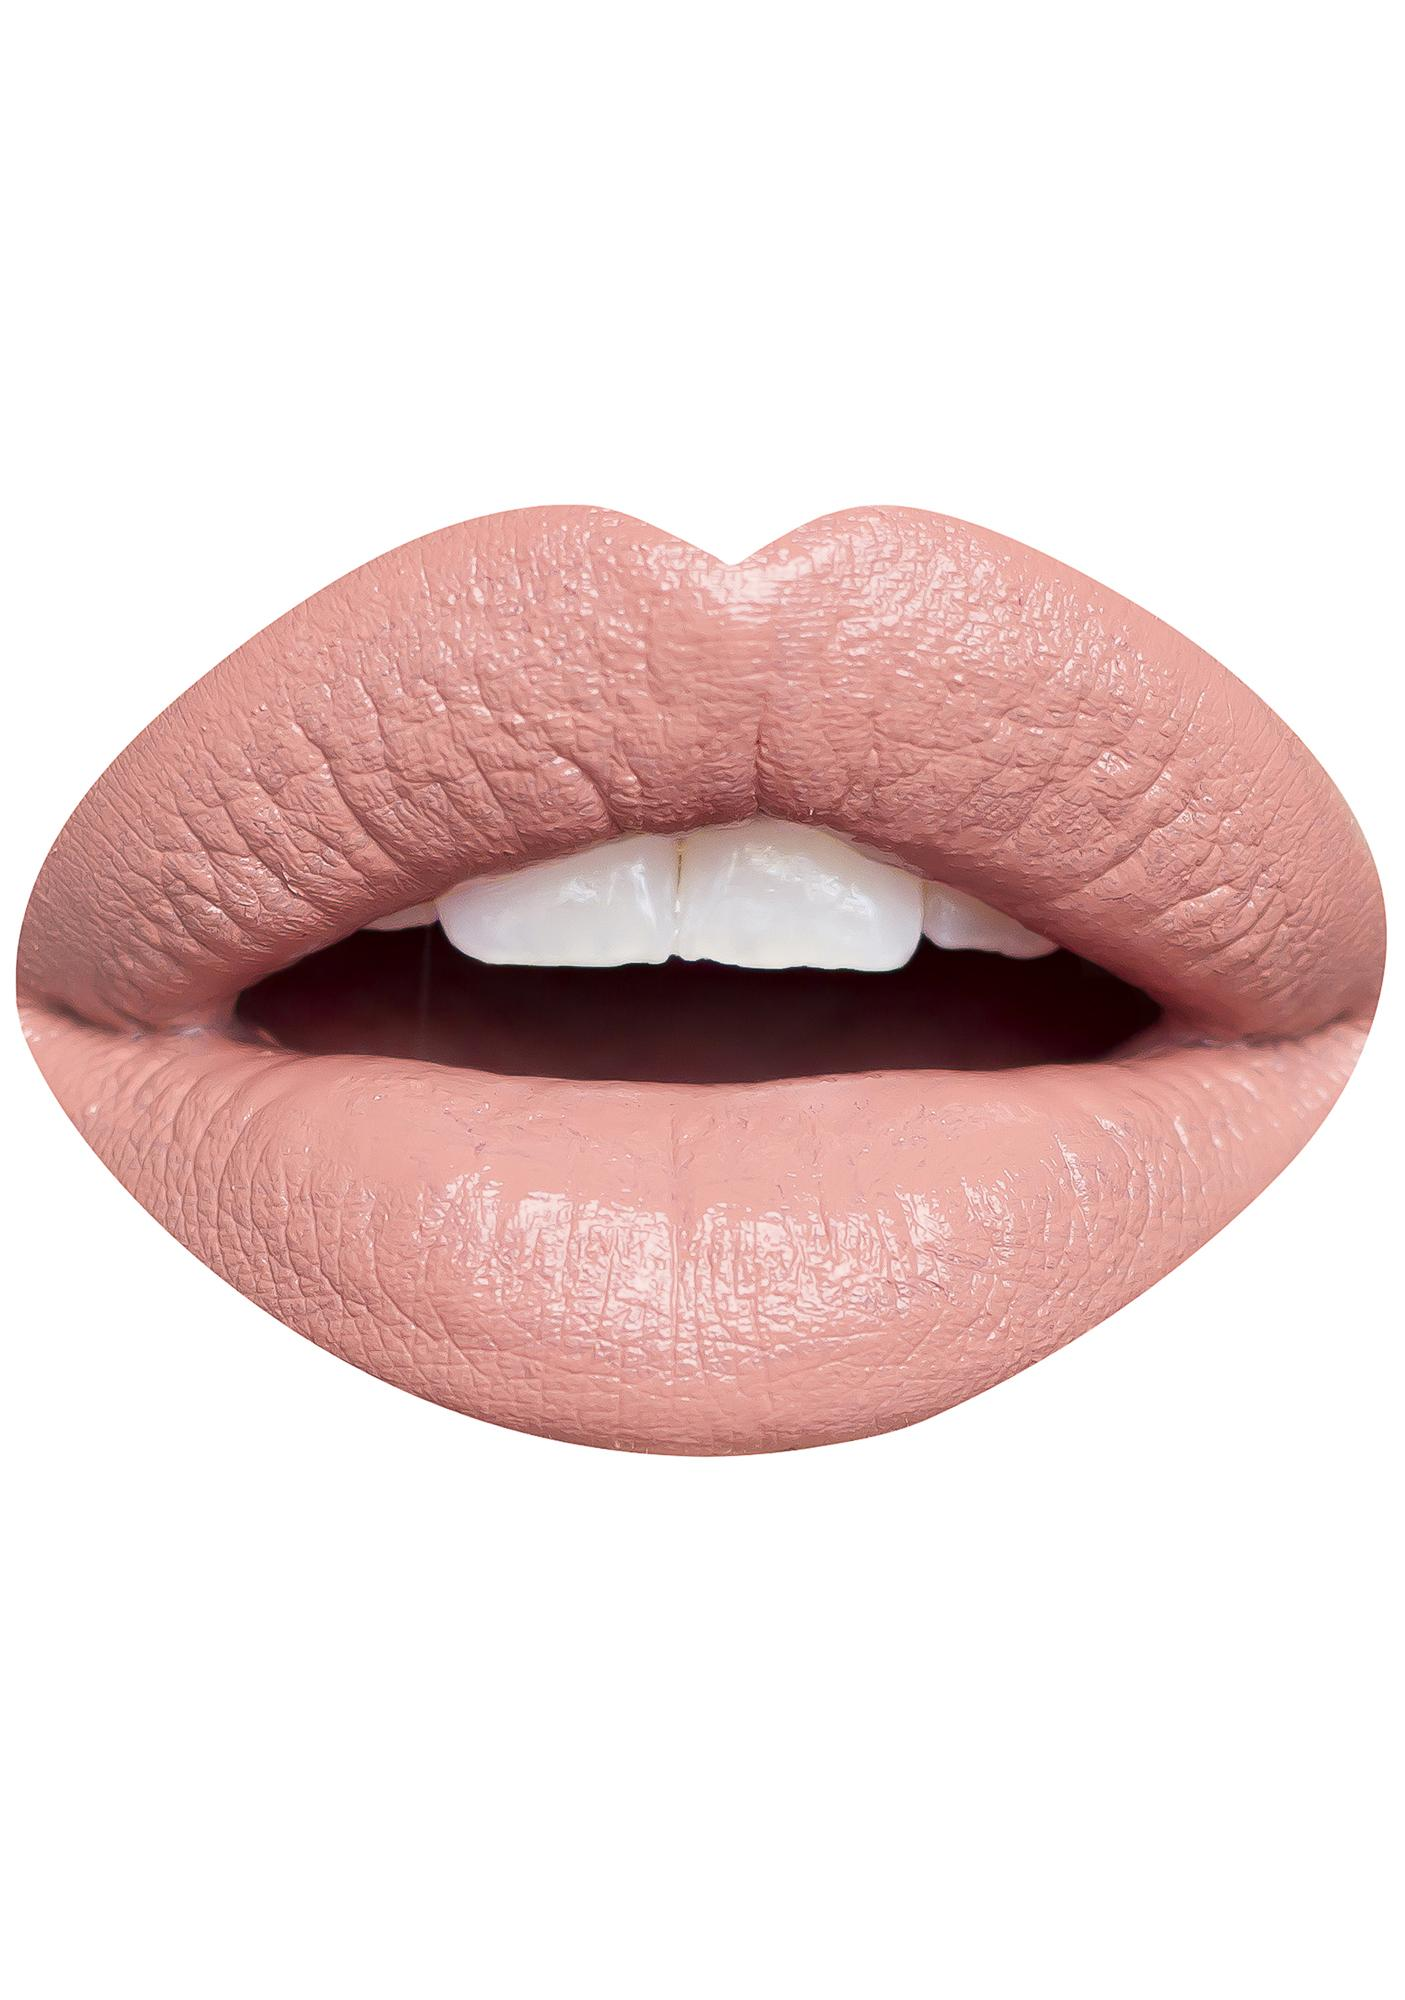 NEVERMIND Cosmetics Grl Talk Lipstick